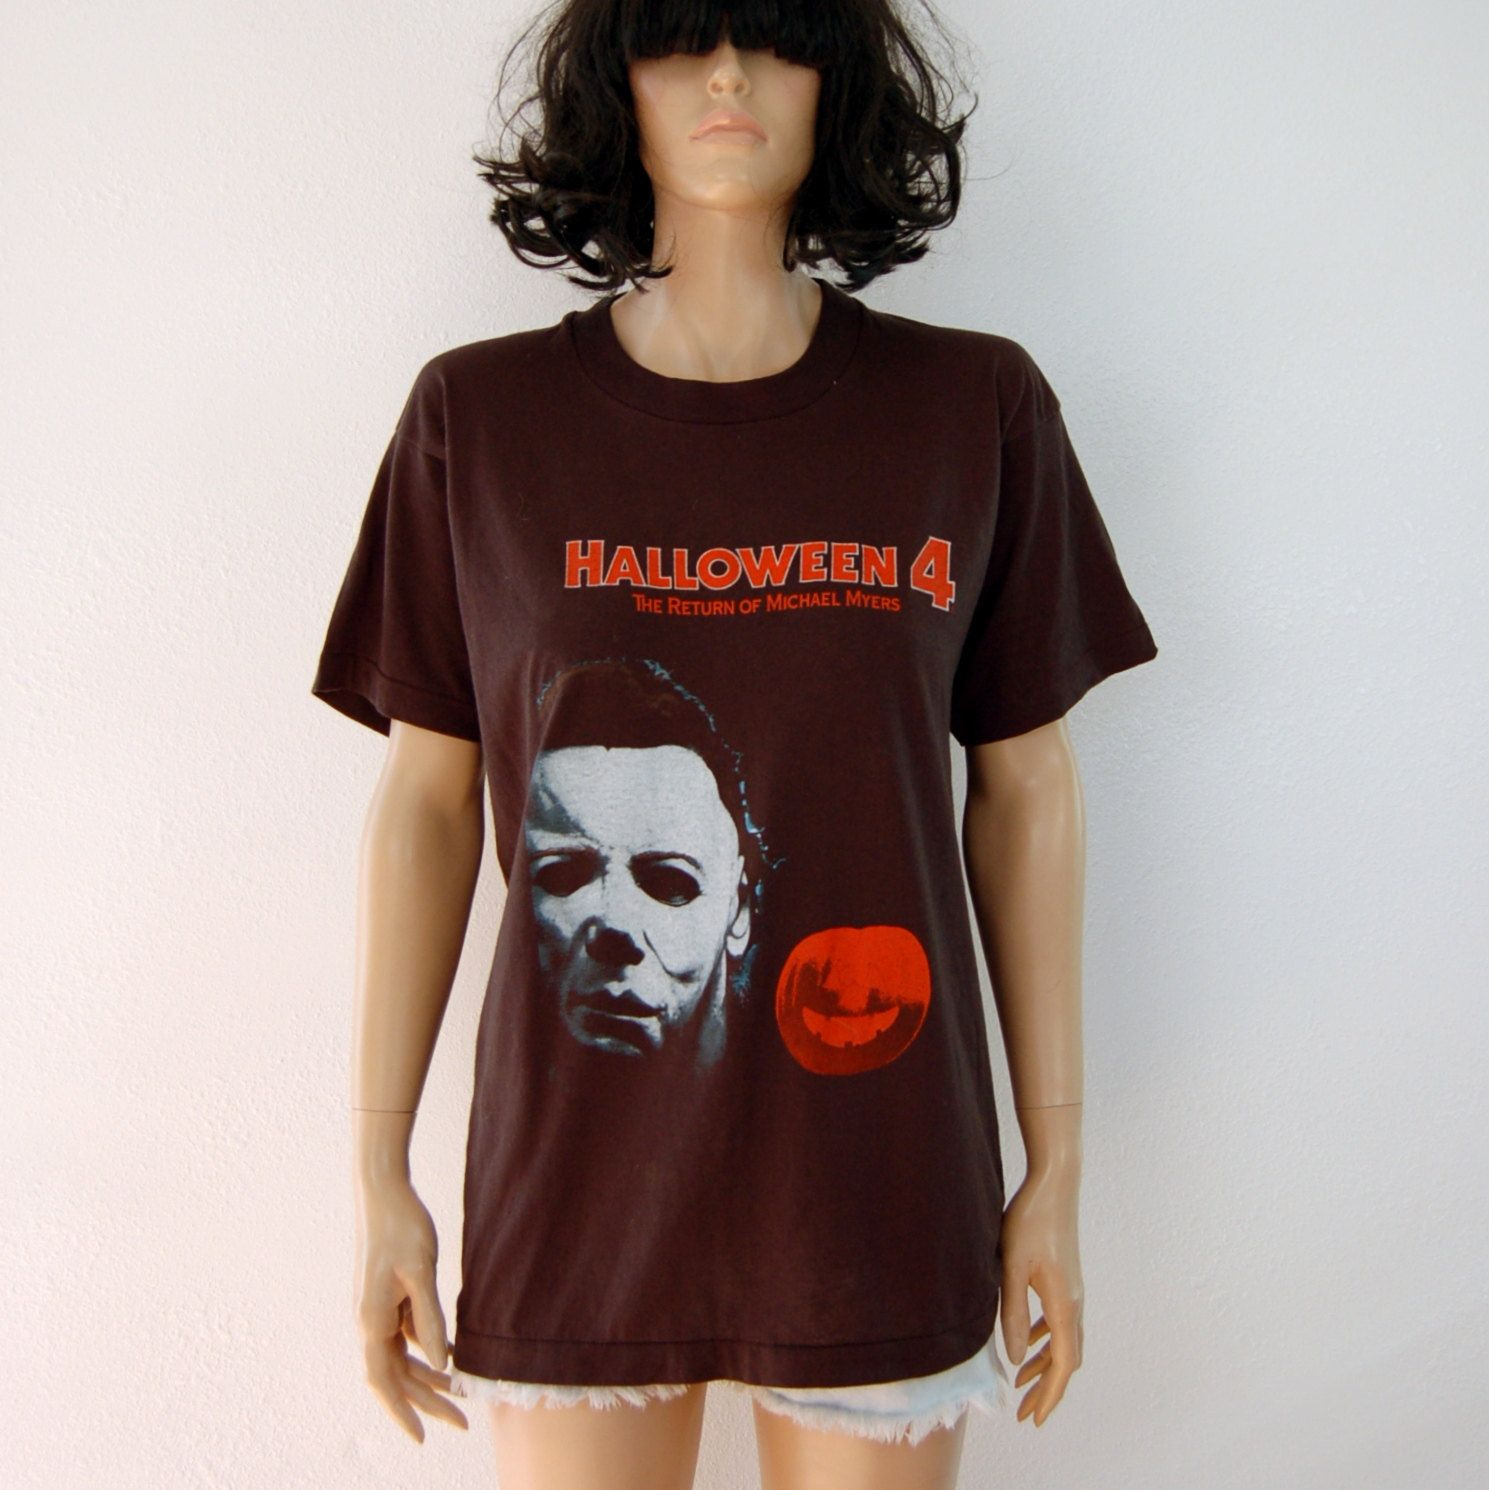 80s Vintage Michael Myers Halloween 4 Horror Film T Shirt